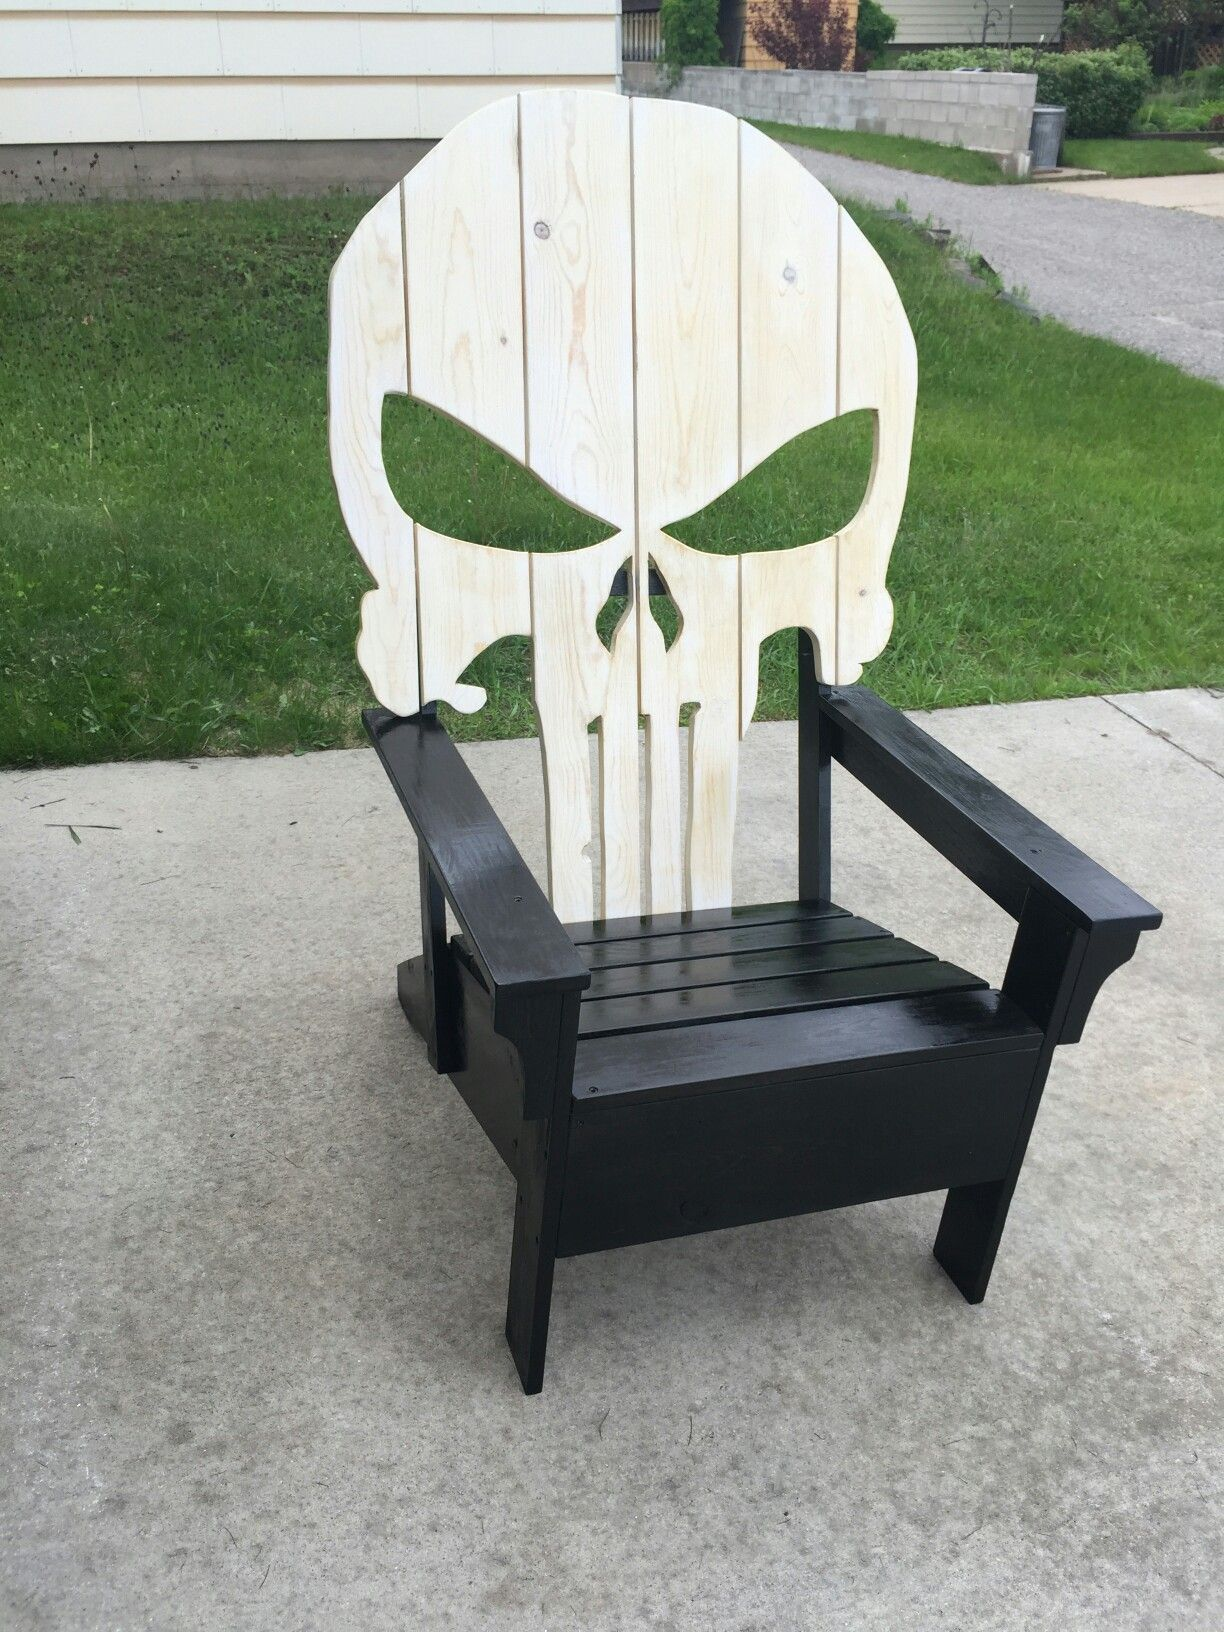 punisher chair garage projects and diy pinterest punisher woodworking and wood projects. Black Bedroom Furniture Sets. Home Design Ideas